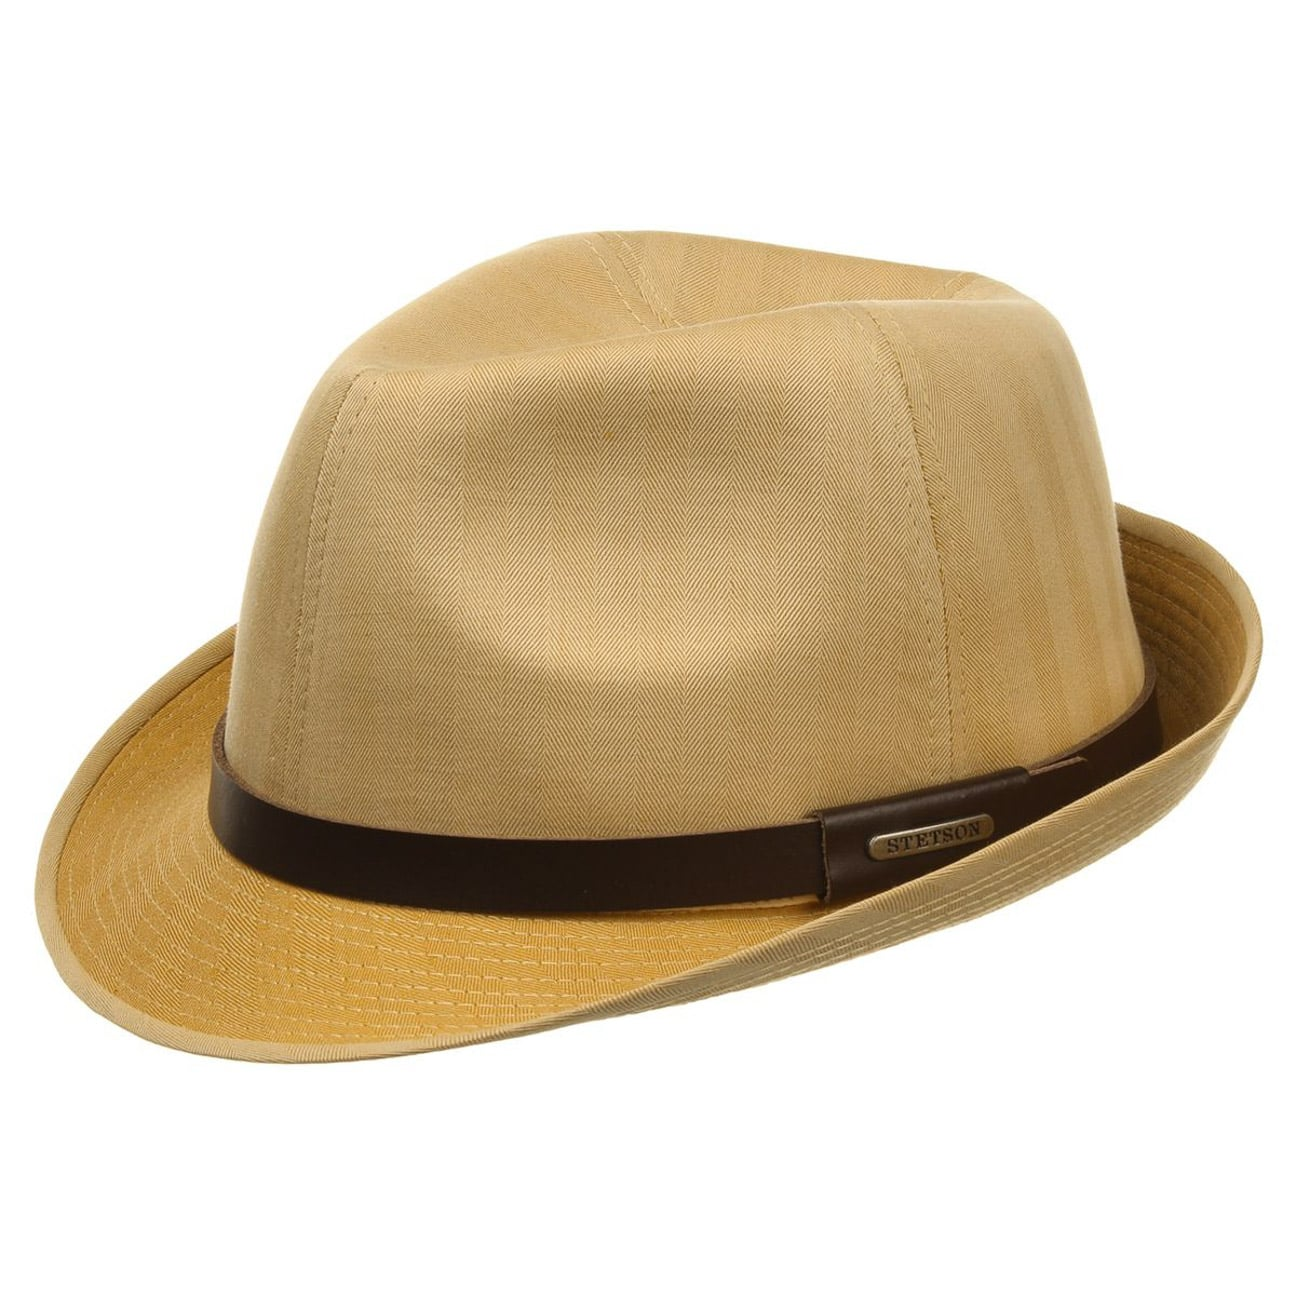 0ae8f6d9501 Bluefield Trilby Hat by Stetson - beige 1 ...